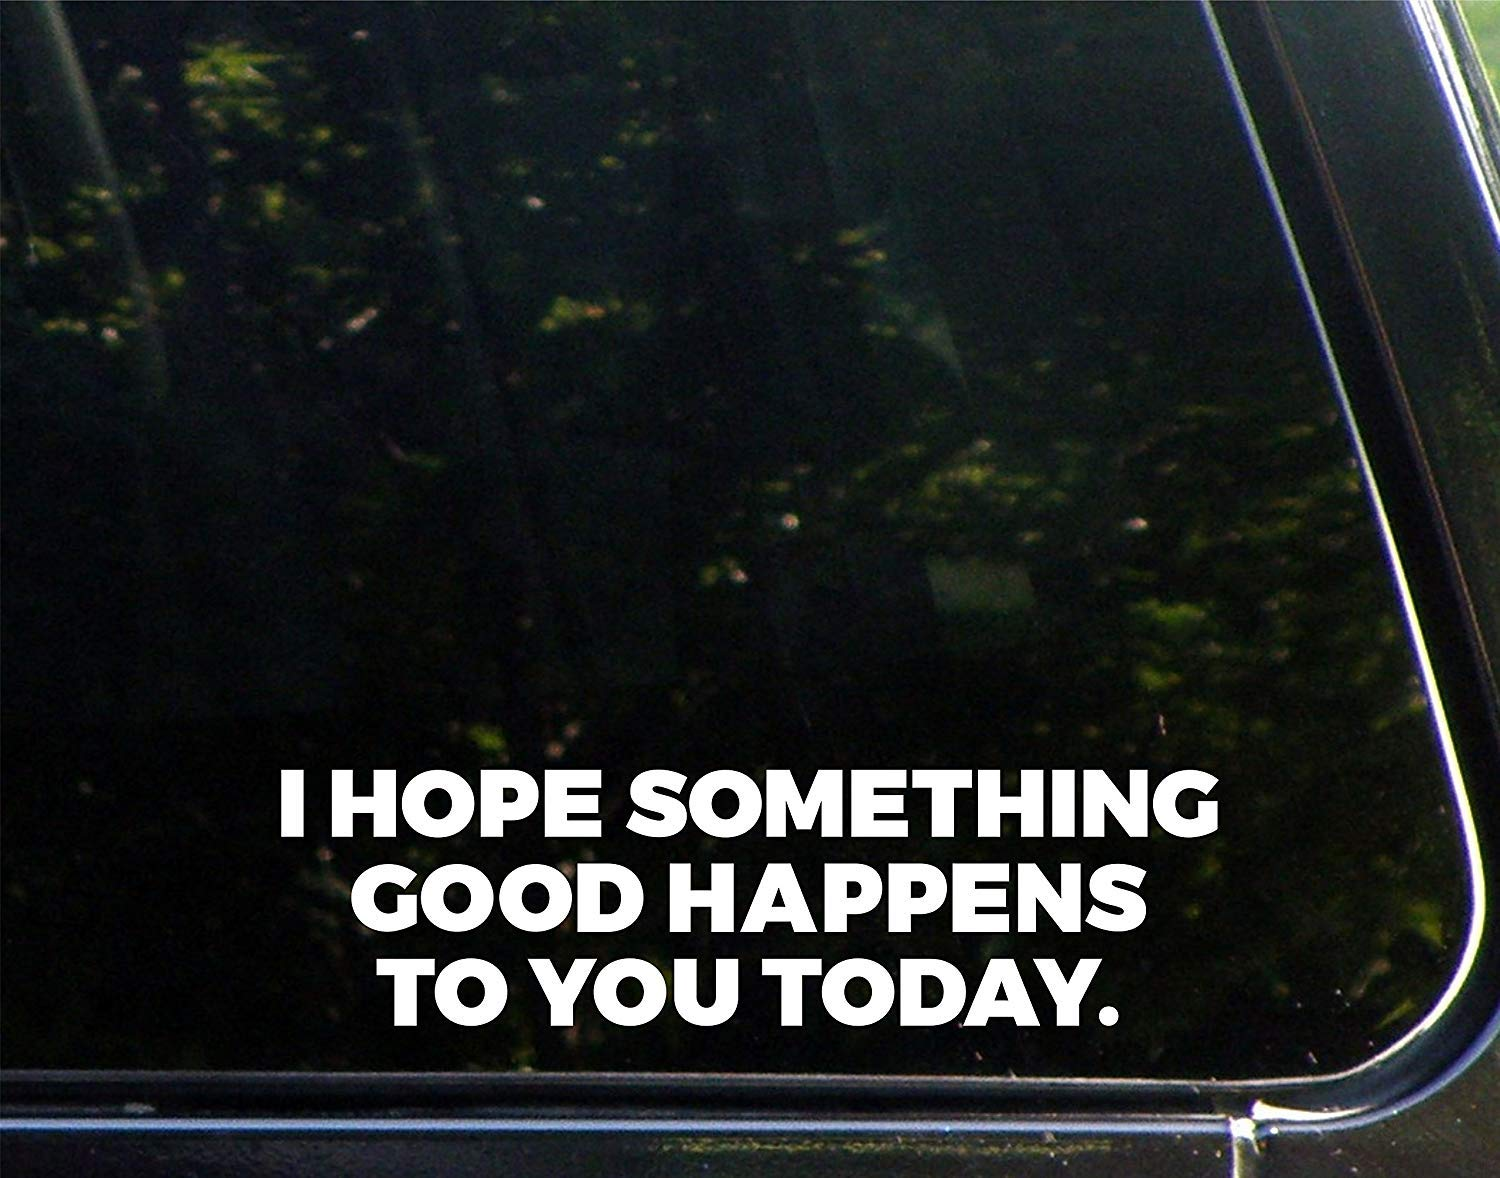 Trucks Vinyl Die Cut Decal// Bumper Sticker For Windows I Hope Something Good Happens To You Today Laptops Etc. 8-3//4 x 2-1//4 Cars